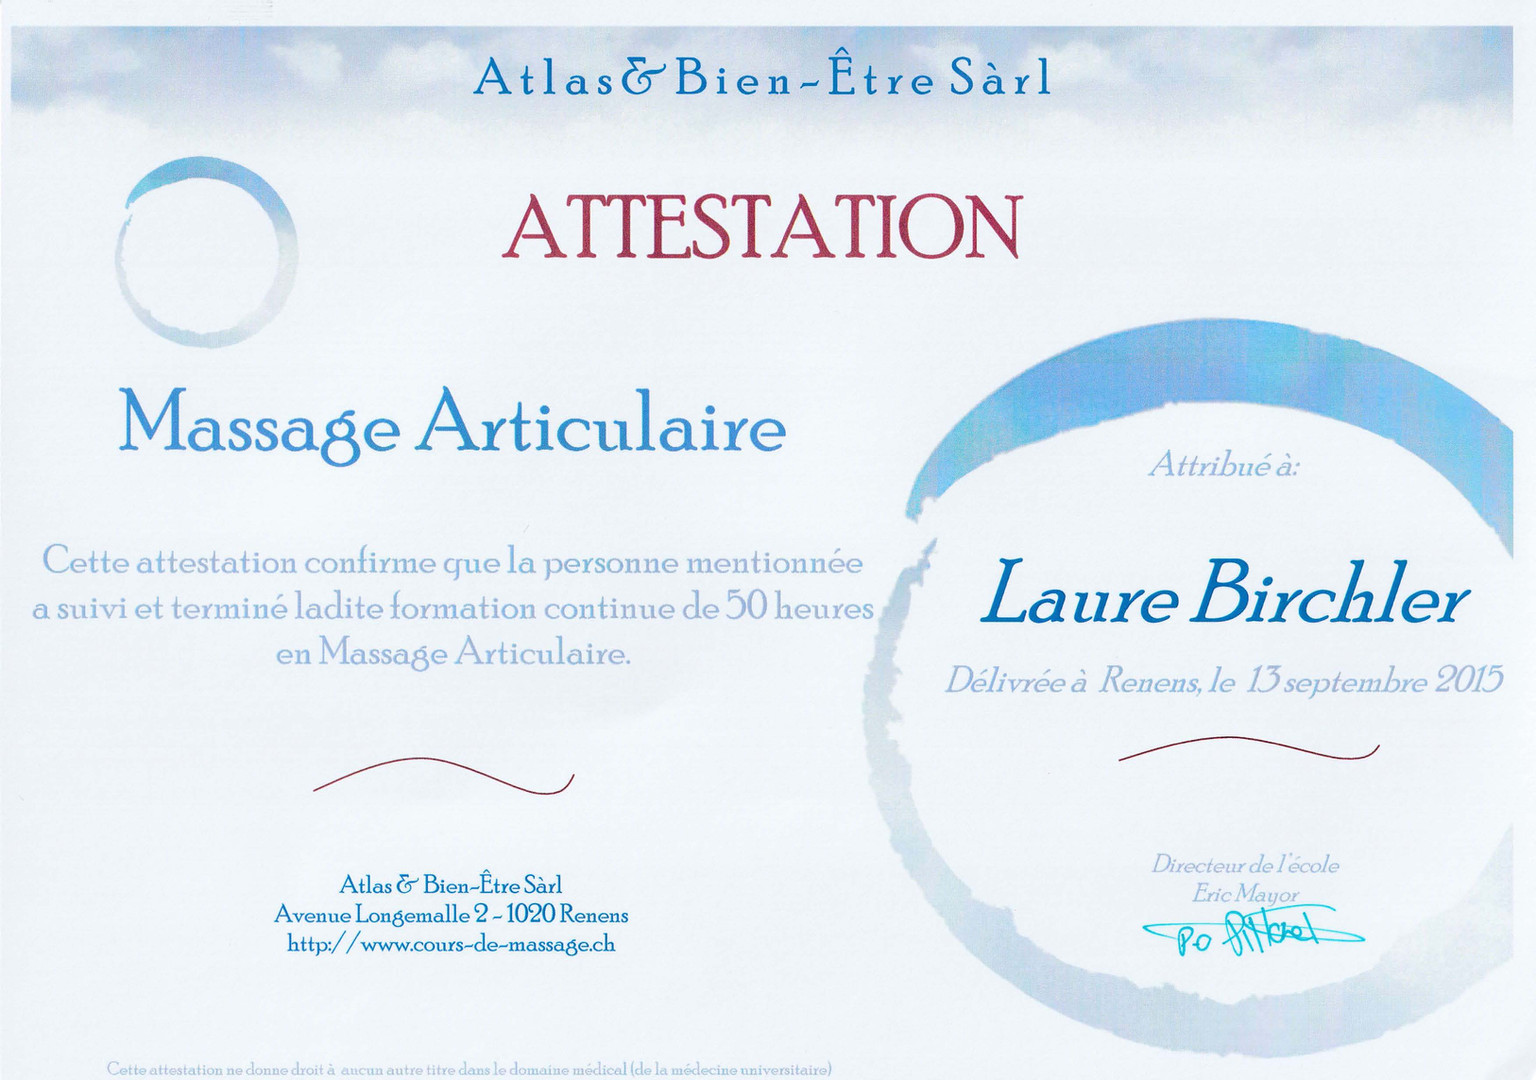 Attestation Massage Articulaire.jpg